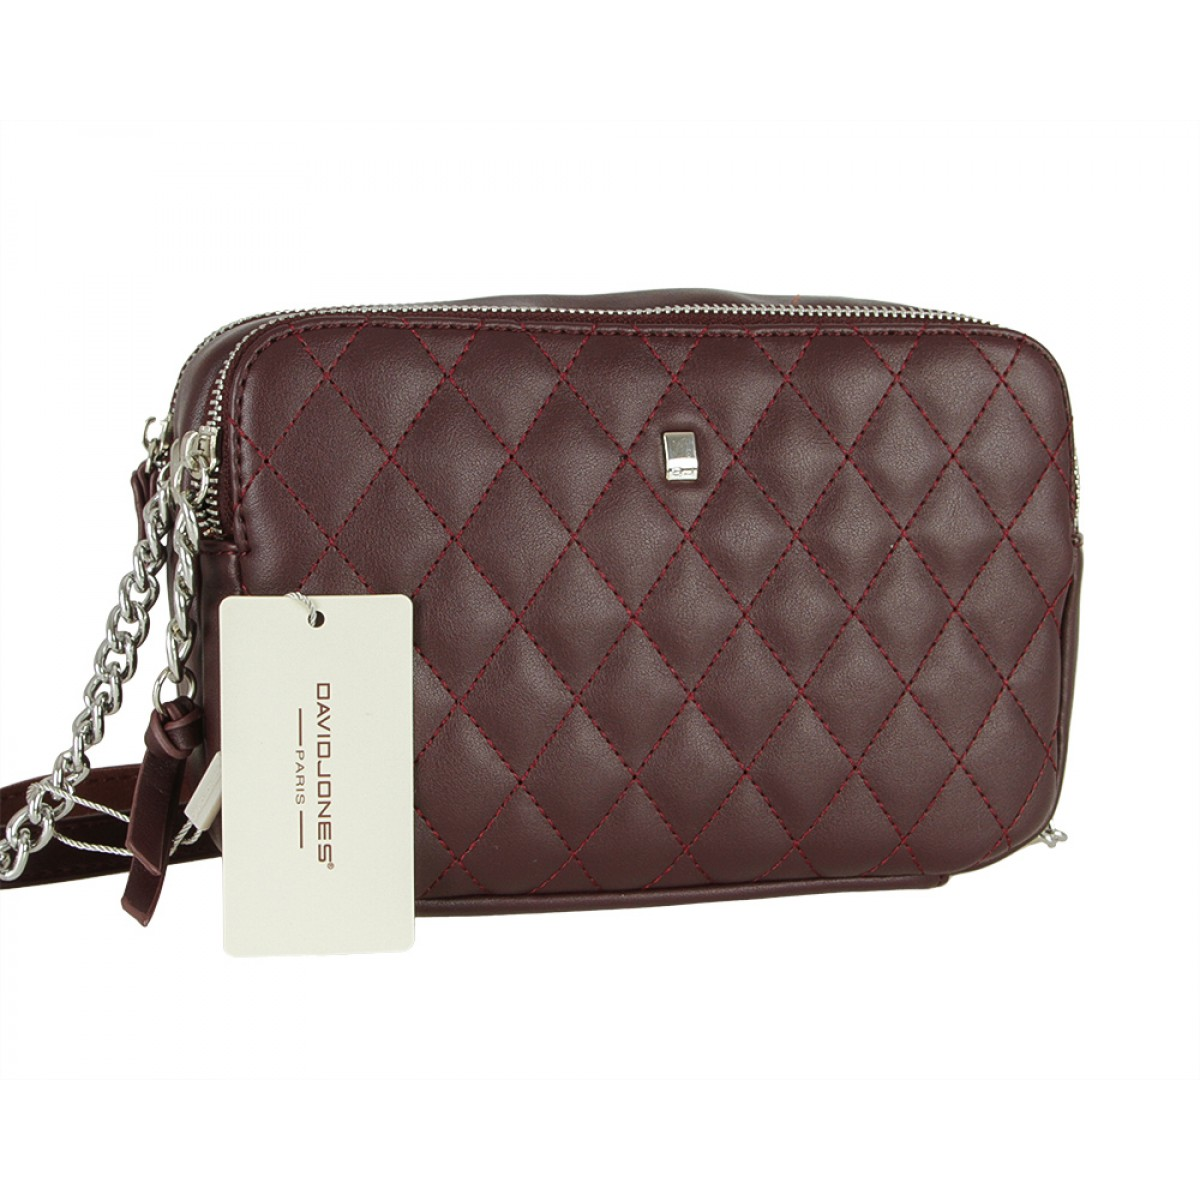 Жіноча сумка David Jones CM5383 DARK.BORDEAUX